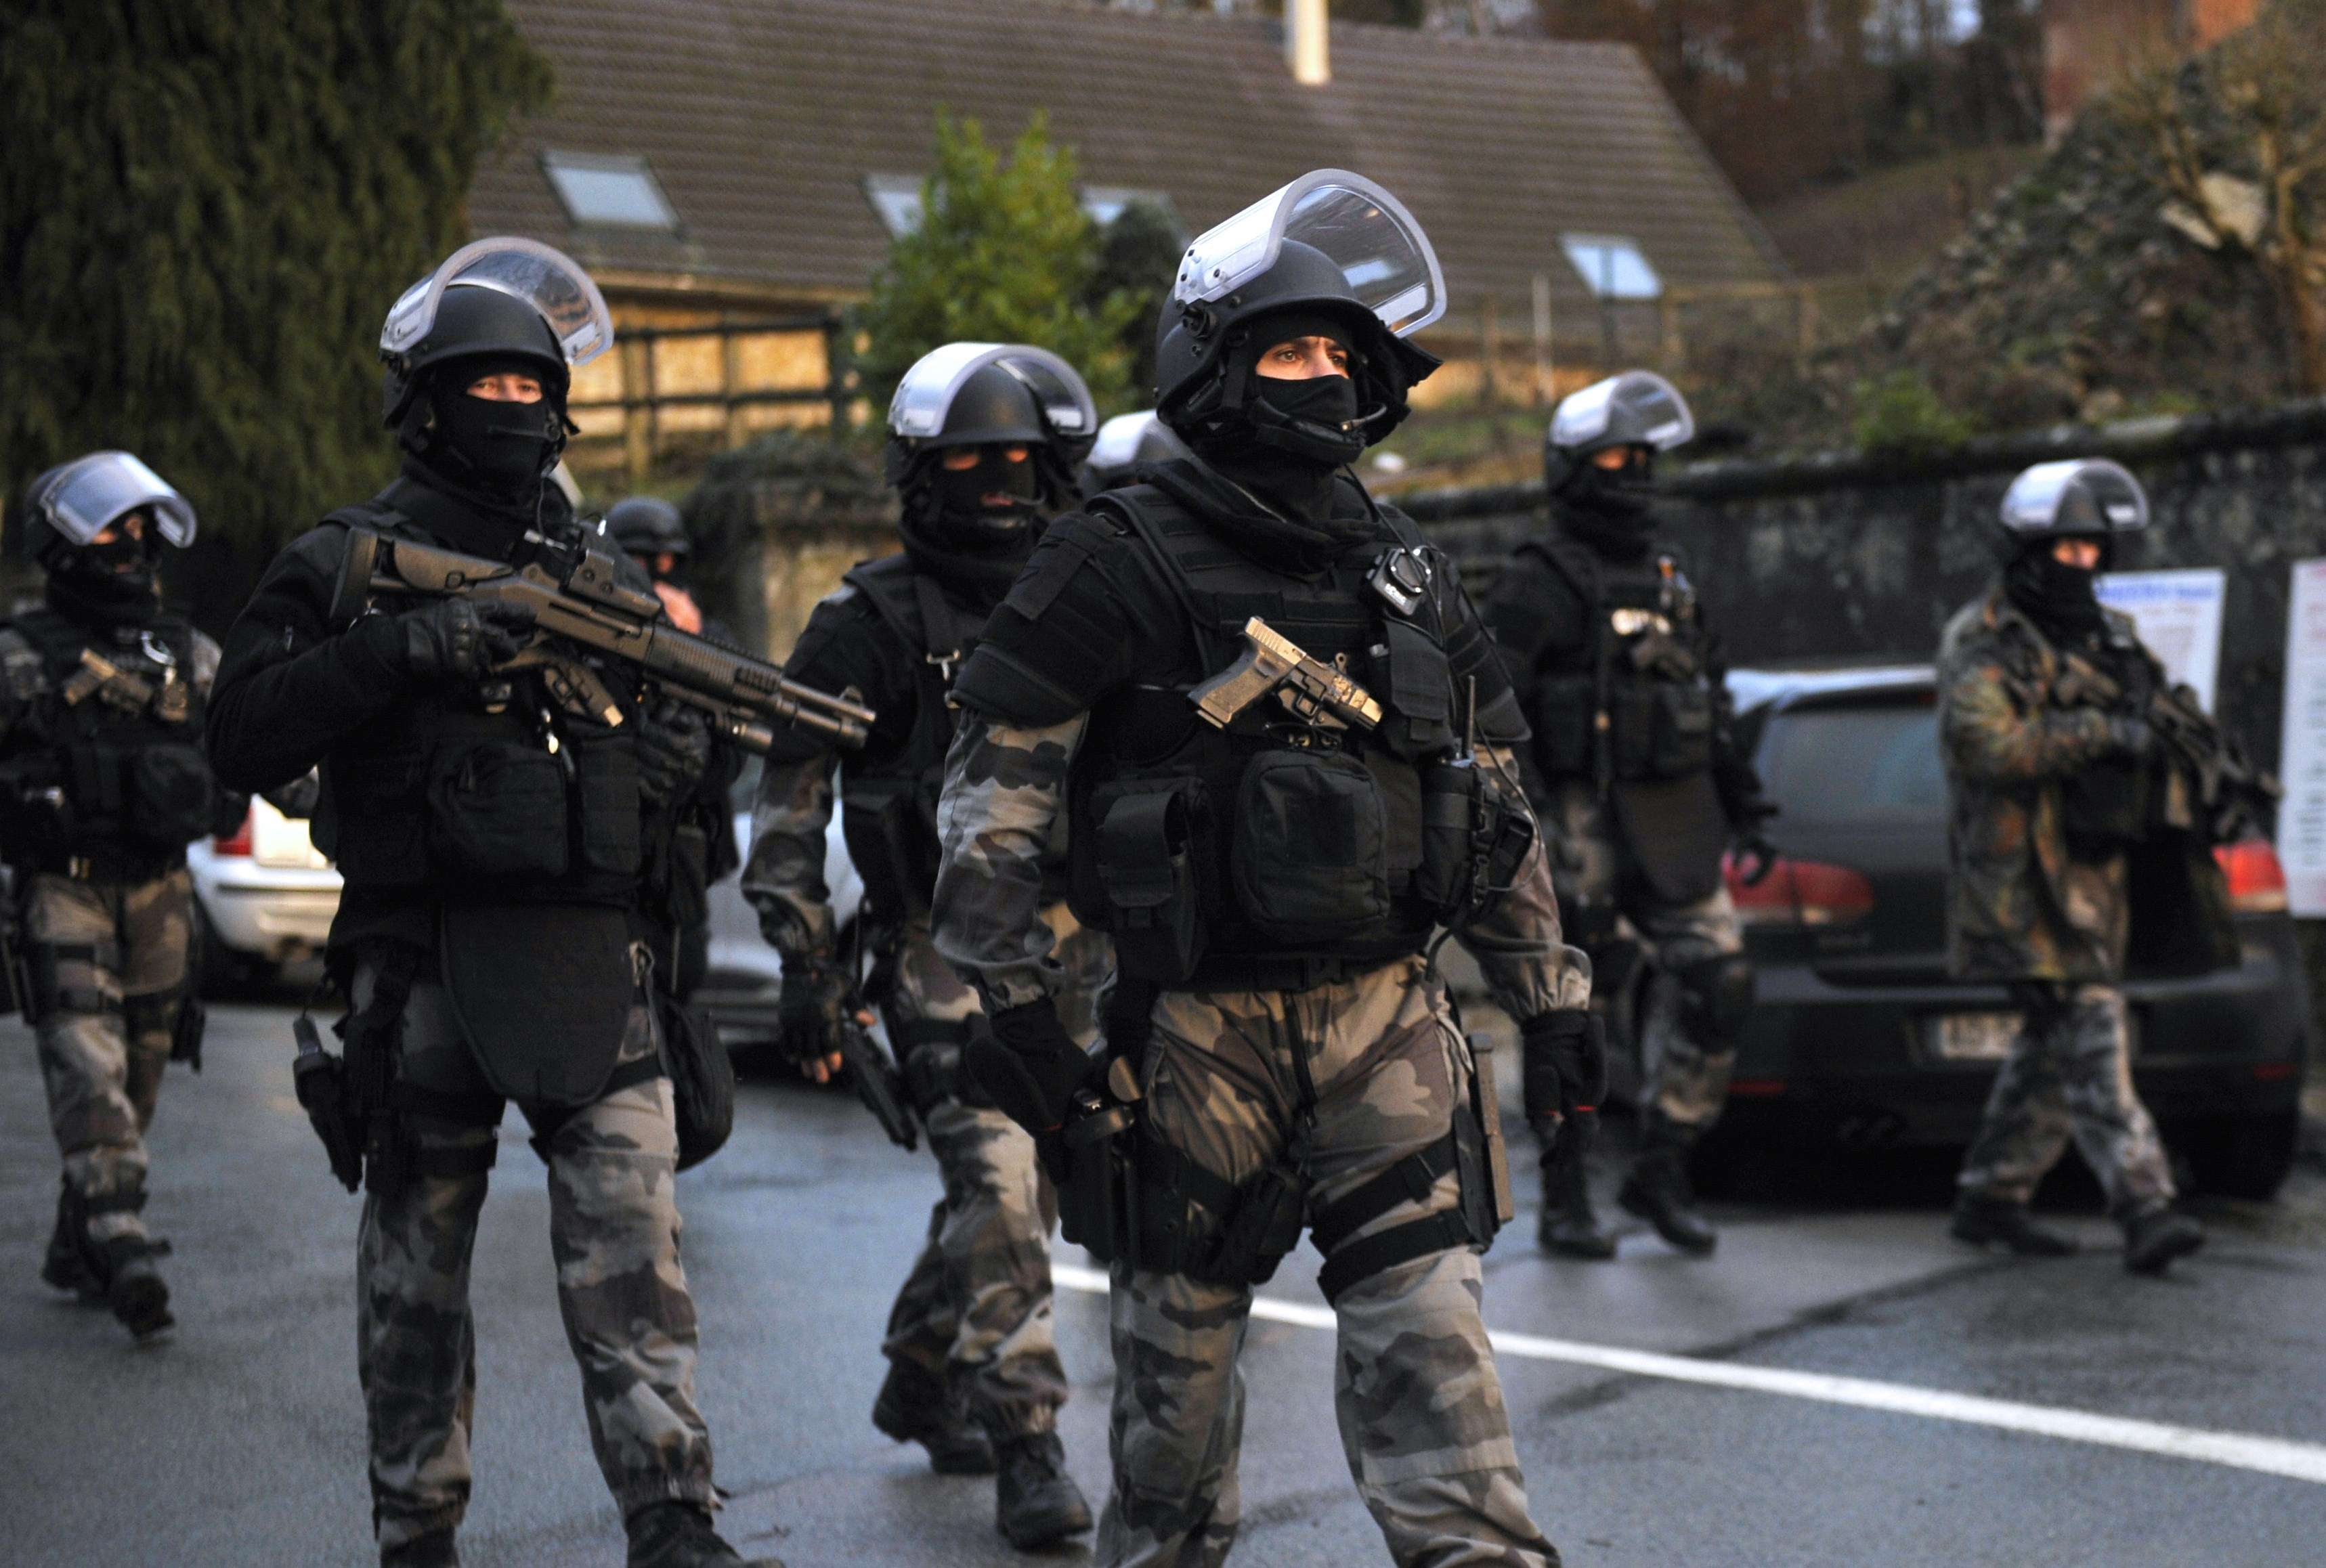 Police in France after a 2015 terror attack